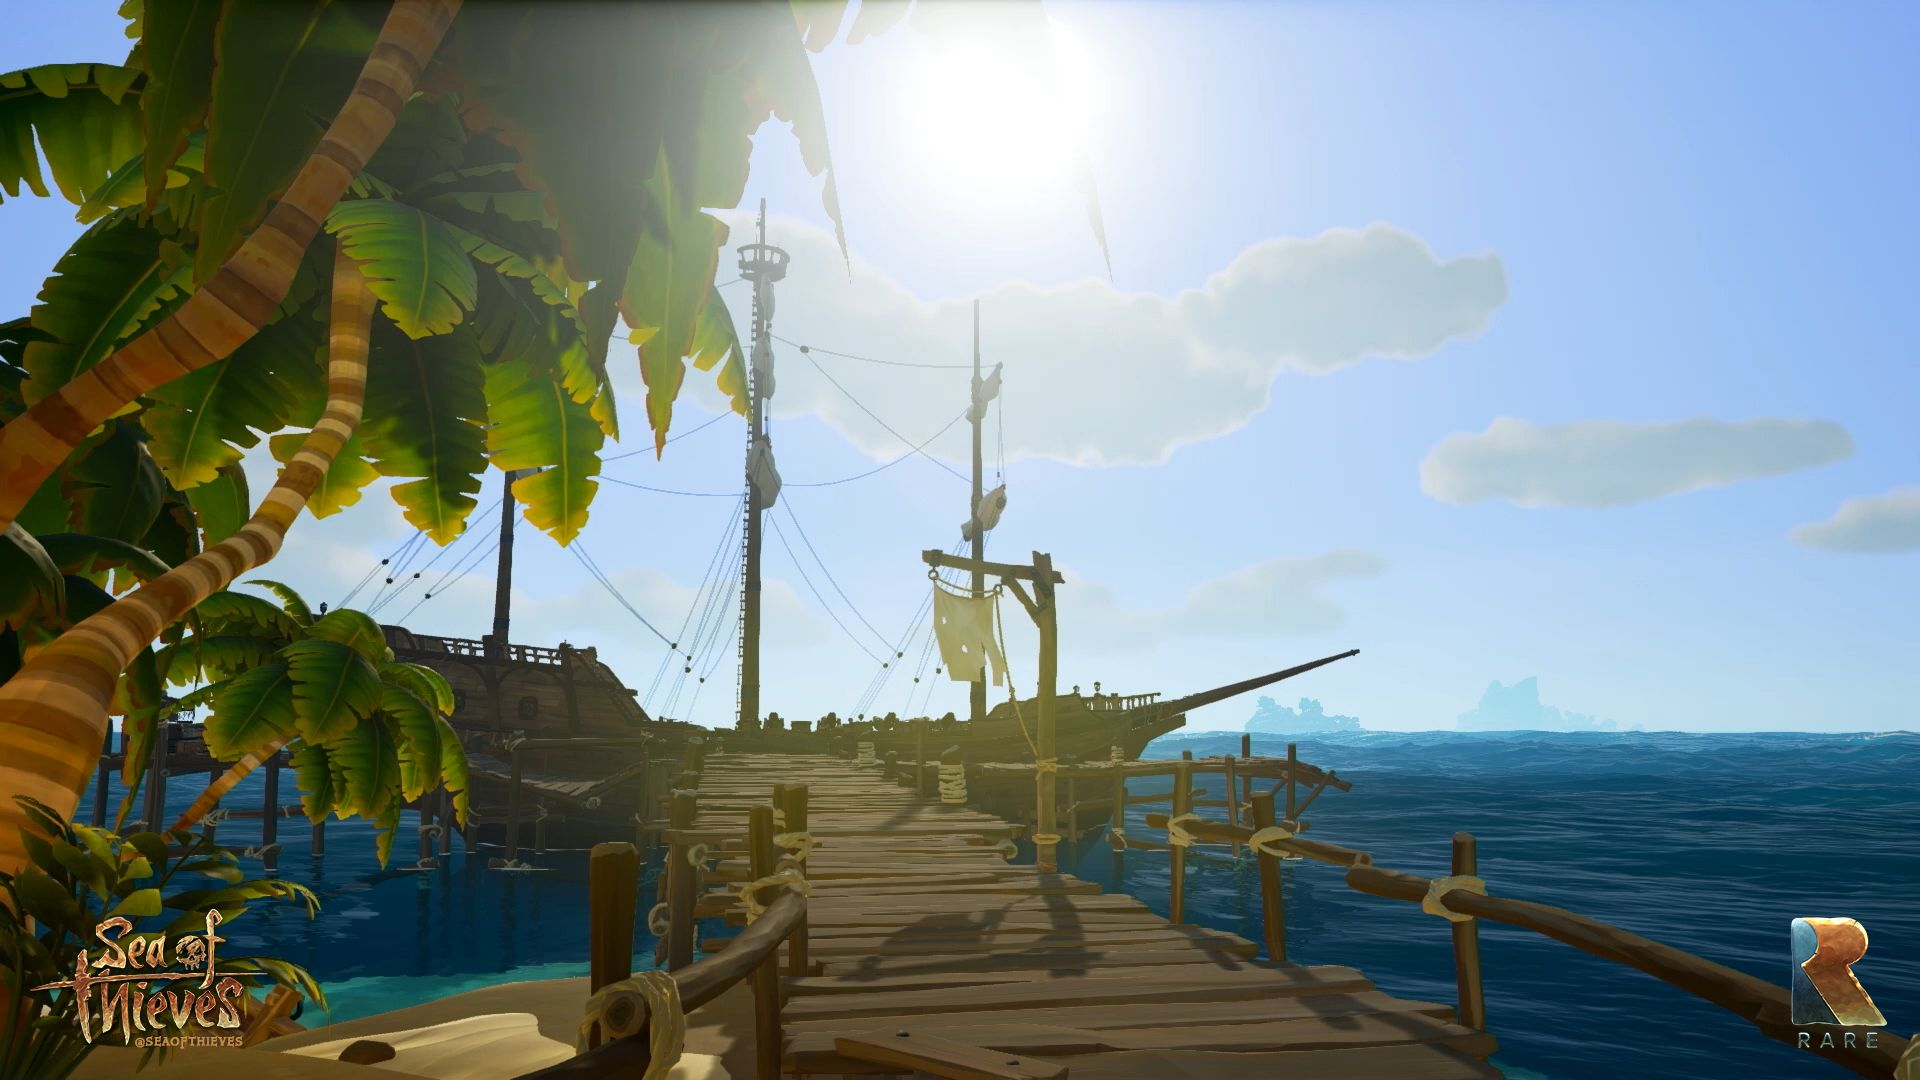 Pictures Of Sea Of Thieves Oceans Detailed In Latest Dev Diary 2 3